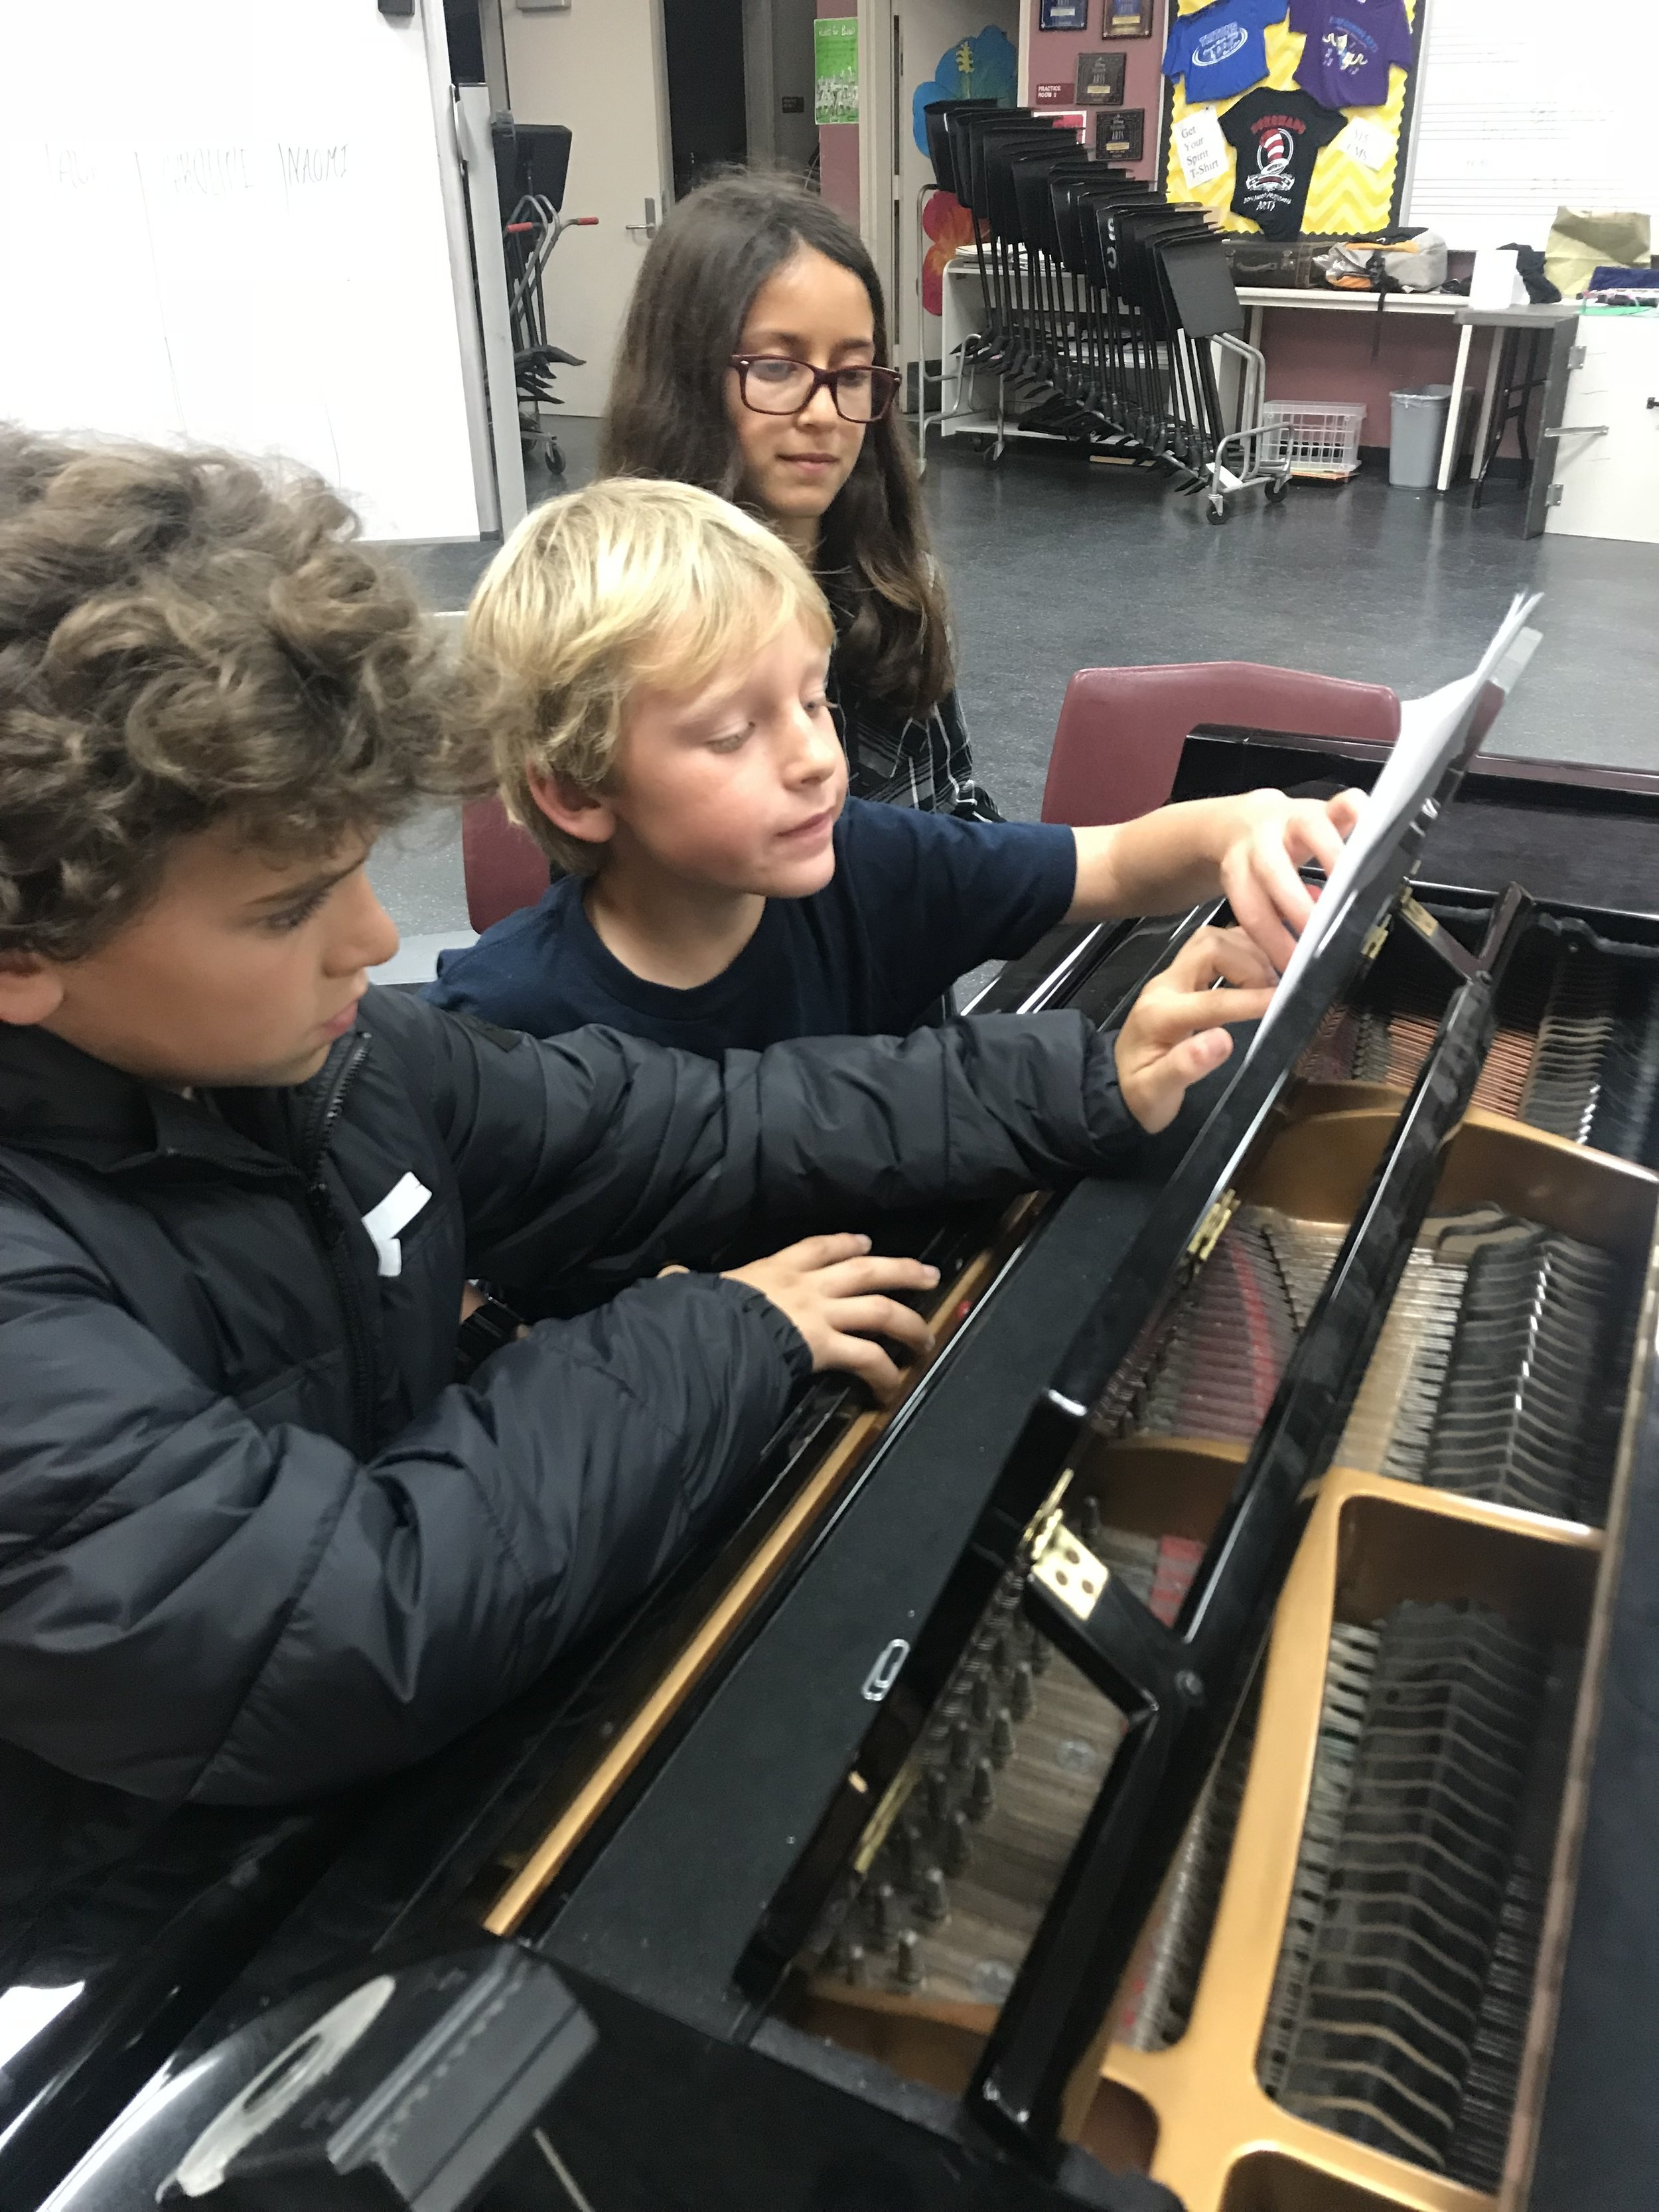 Examining a score together at a Music Workshop